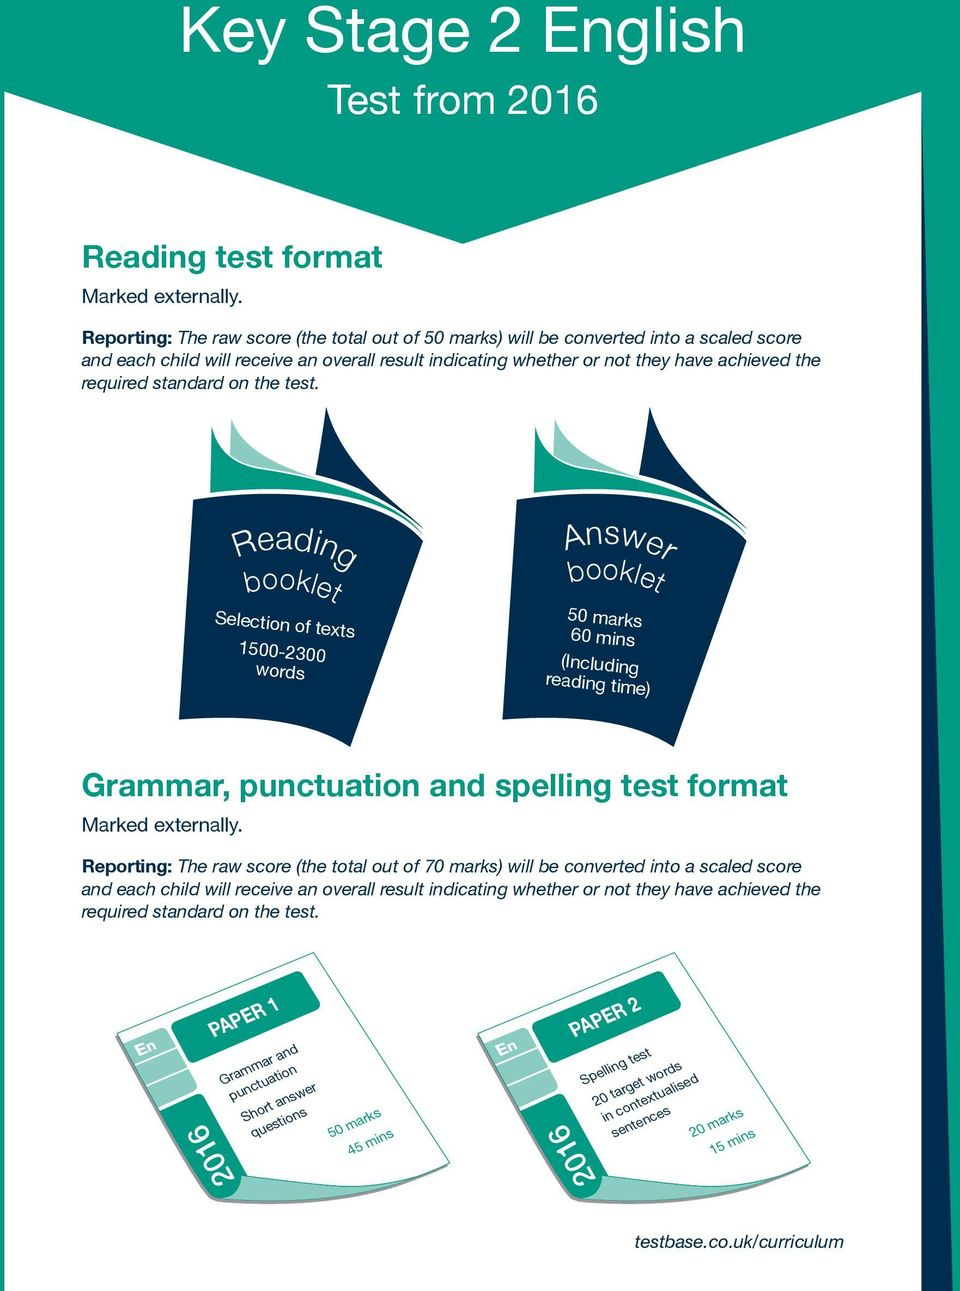 standard on the test. Reading booklet Selection of texts 1500-2300 words Answer booklet 50 marks 60 mins (Including reading time) Grammar, punctuation and spelling test format Marked externally.